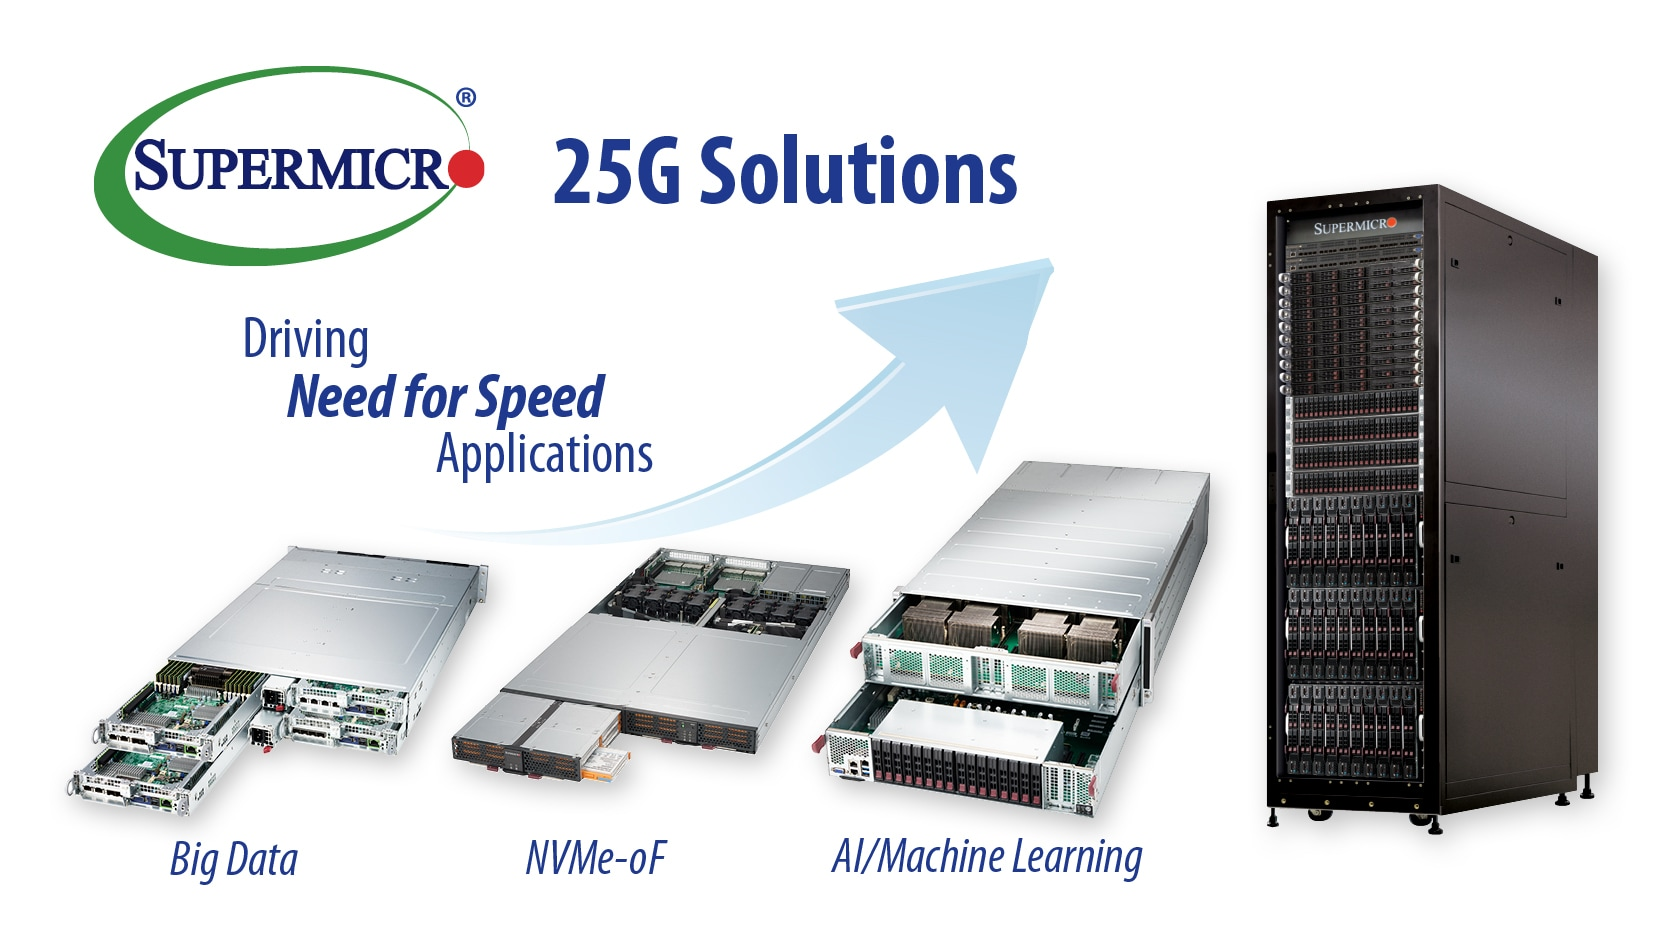 Supermicro | News | Supermicro Opens Path to 100G Networking